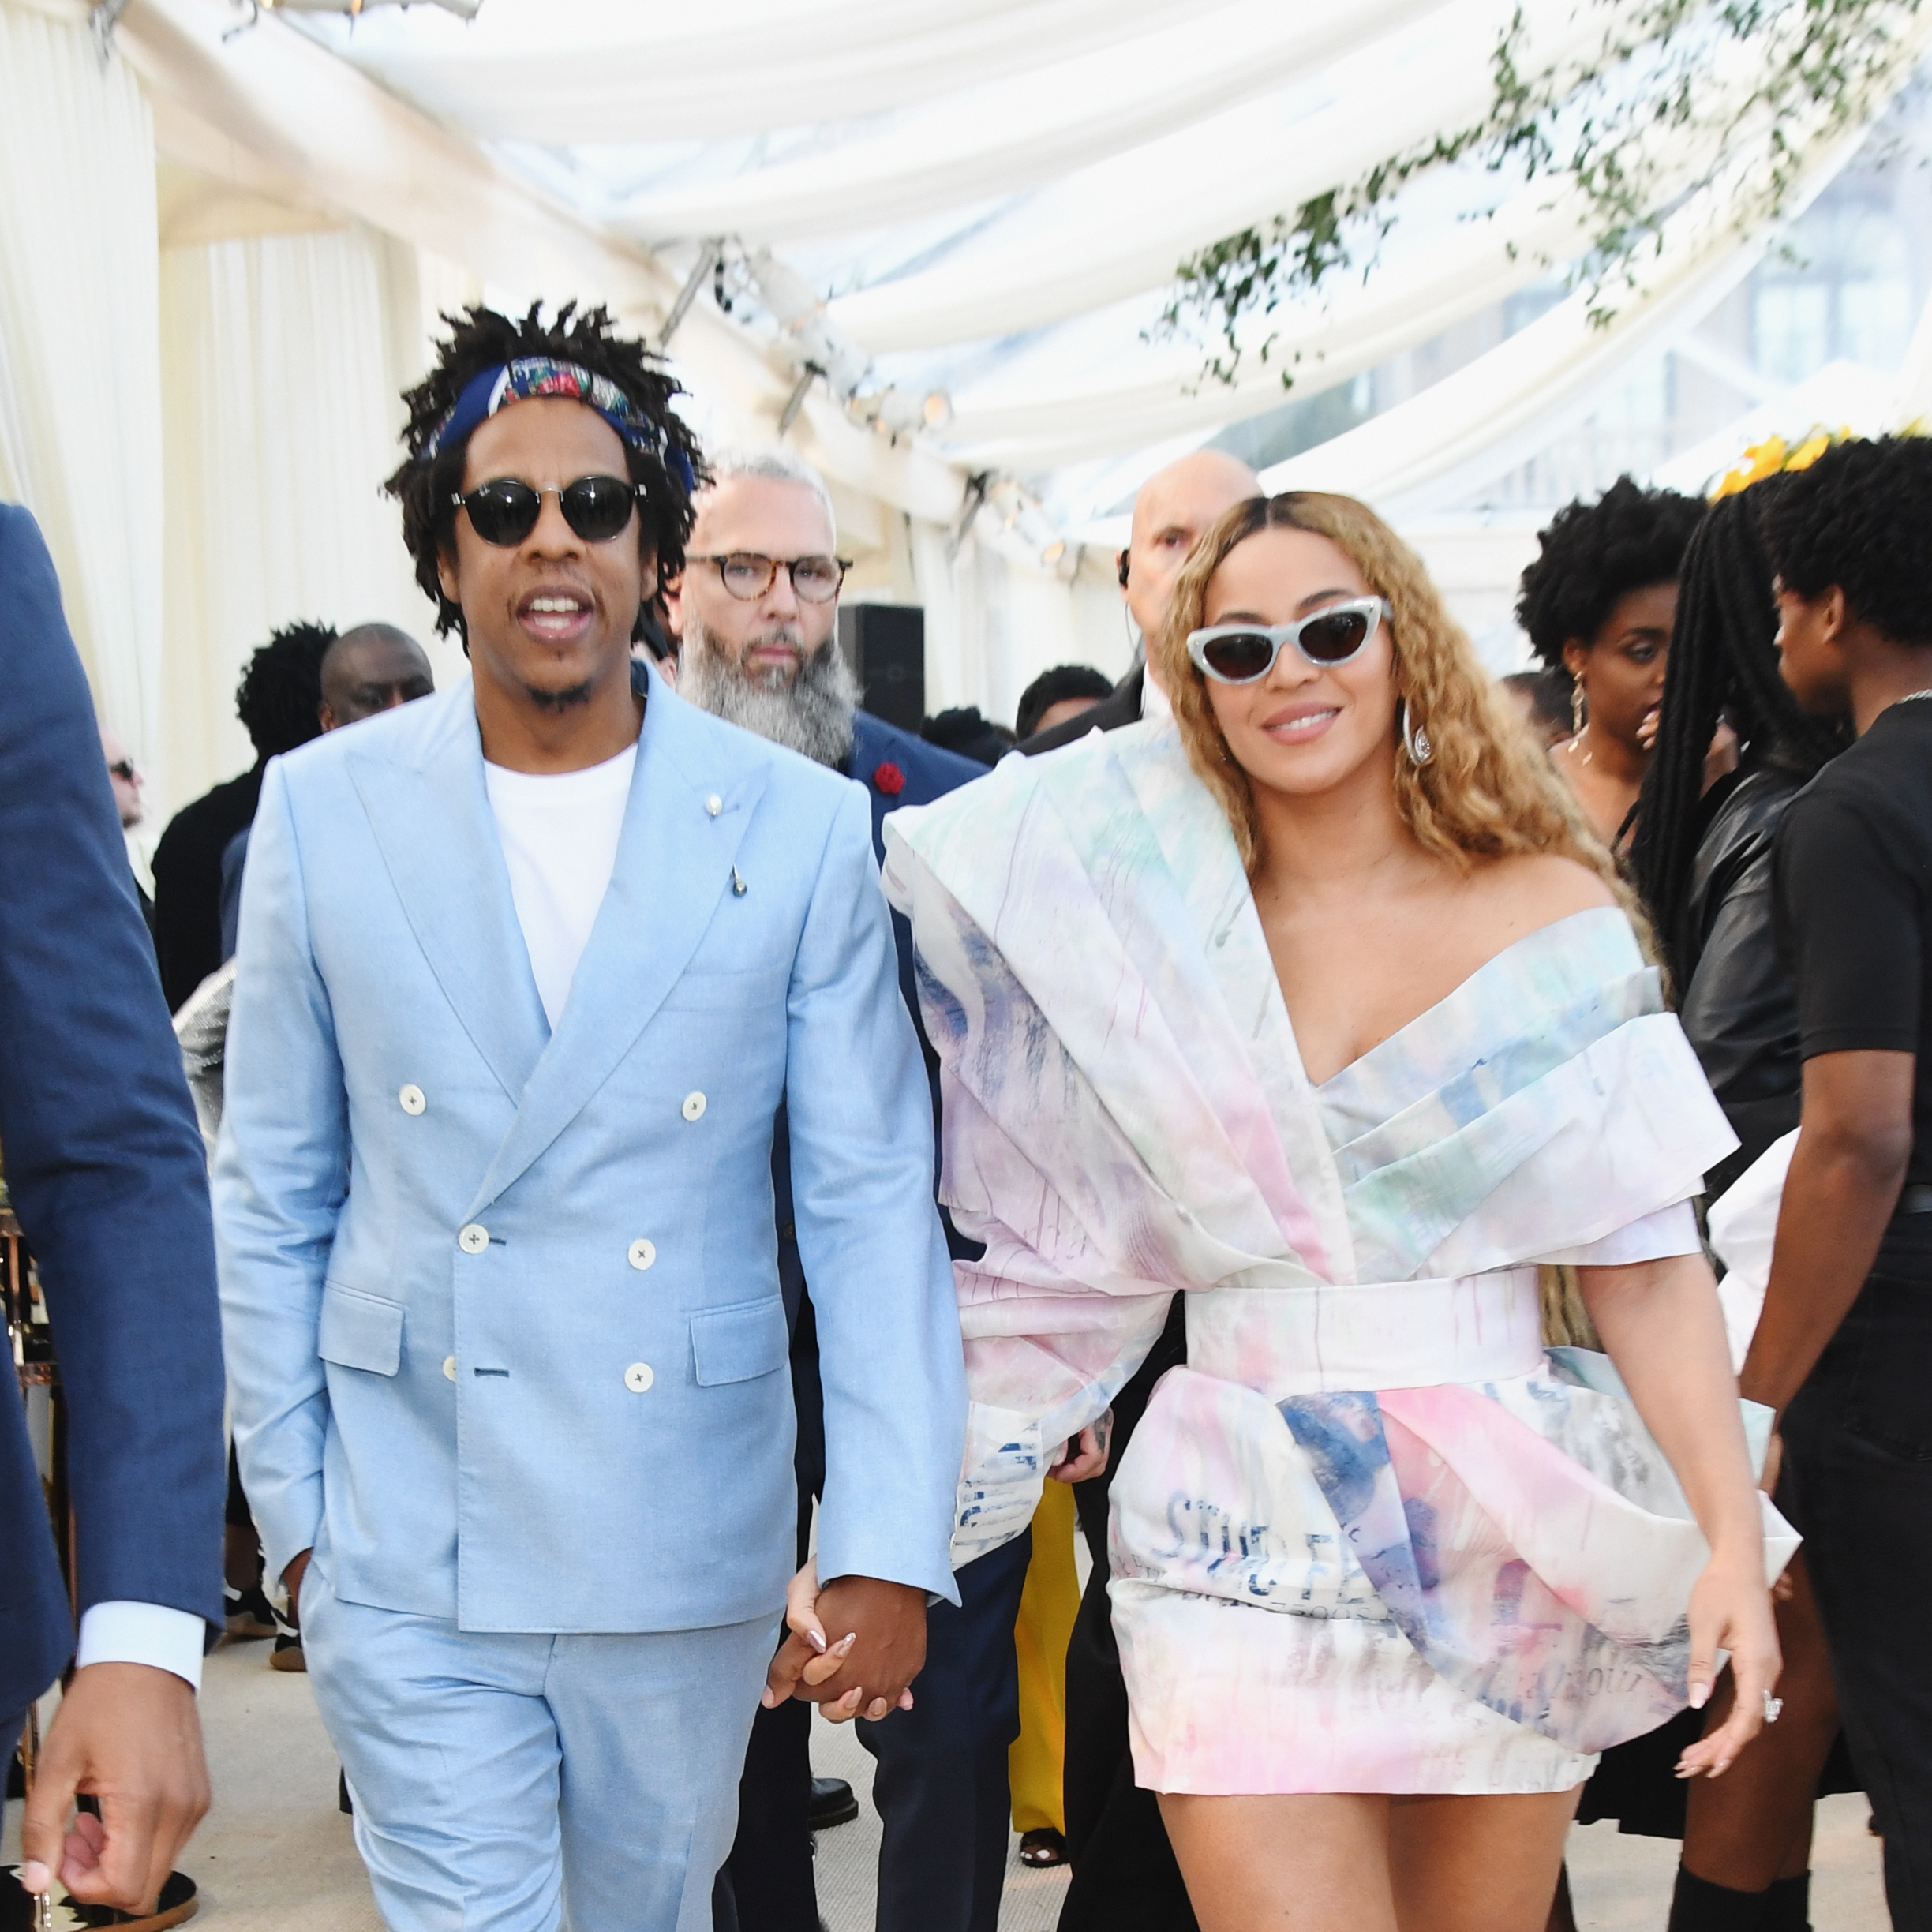 Jay Z and Beyonce attend 2019 Roc Nation THE BRUNCH in Los Angeles on Feb. 9, 2019.